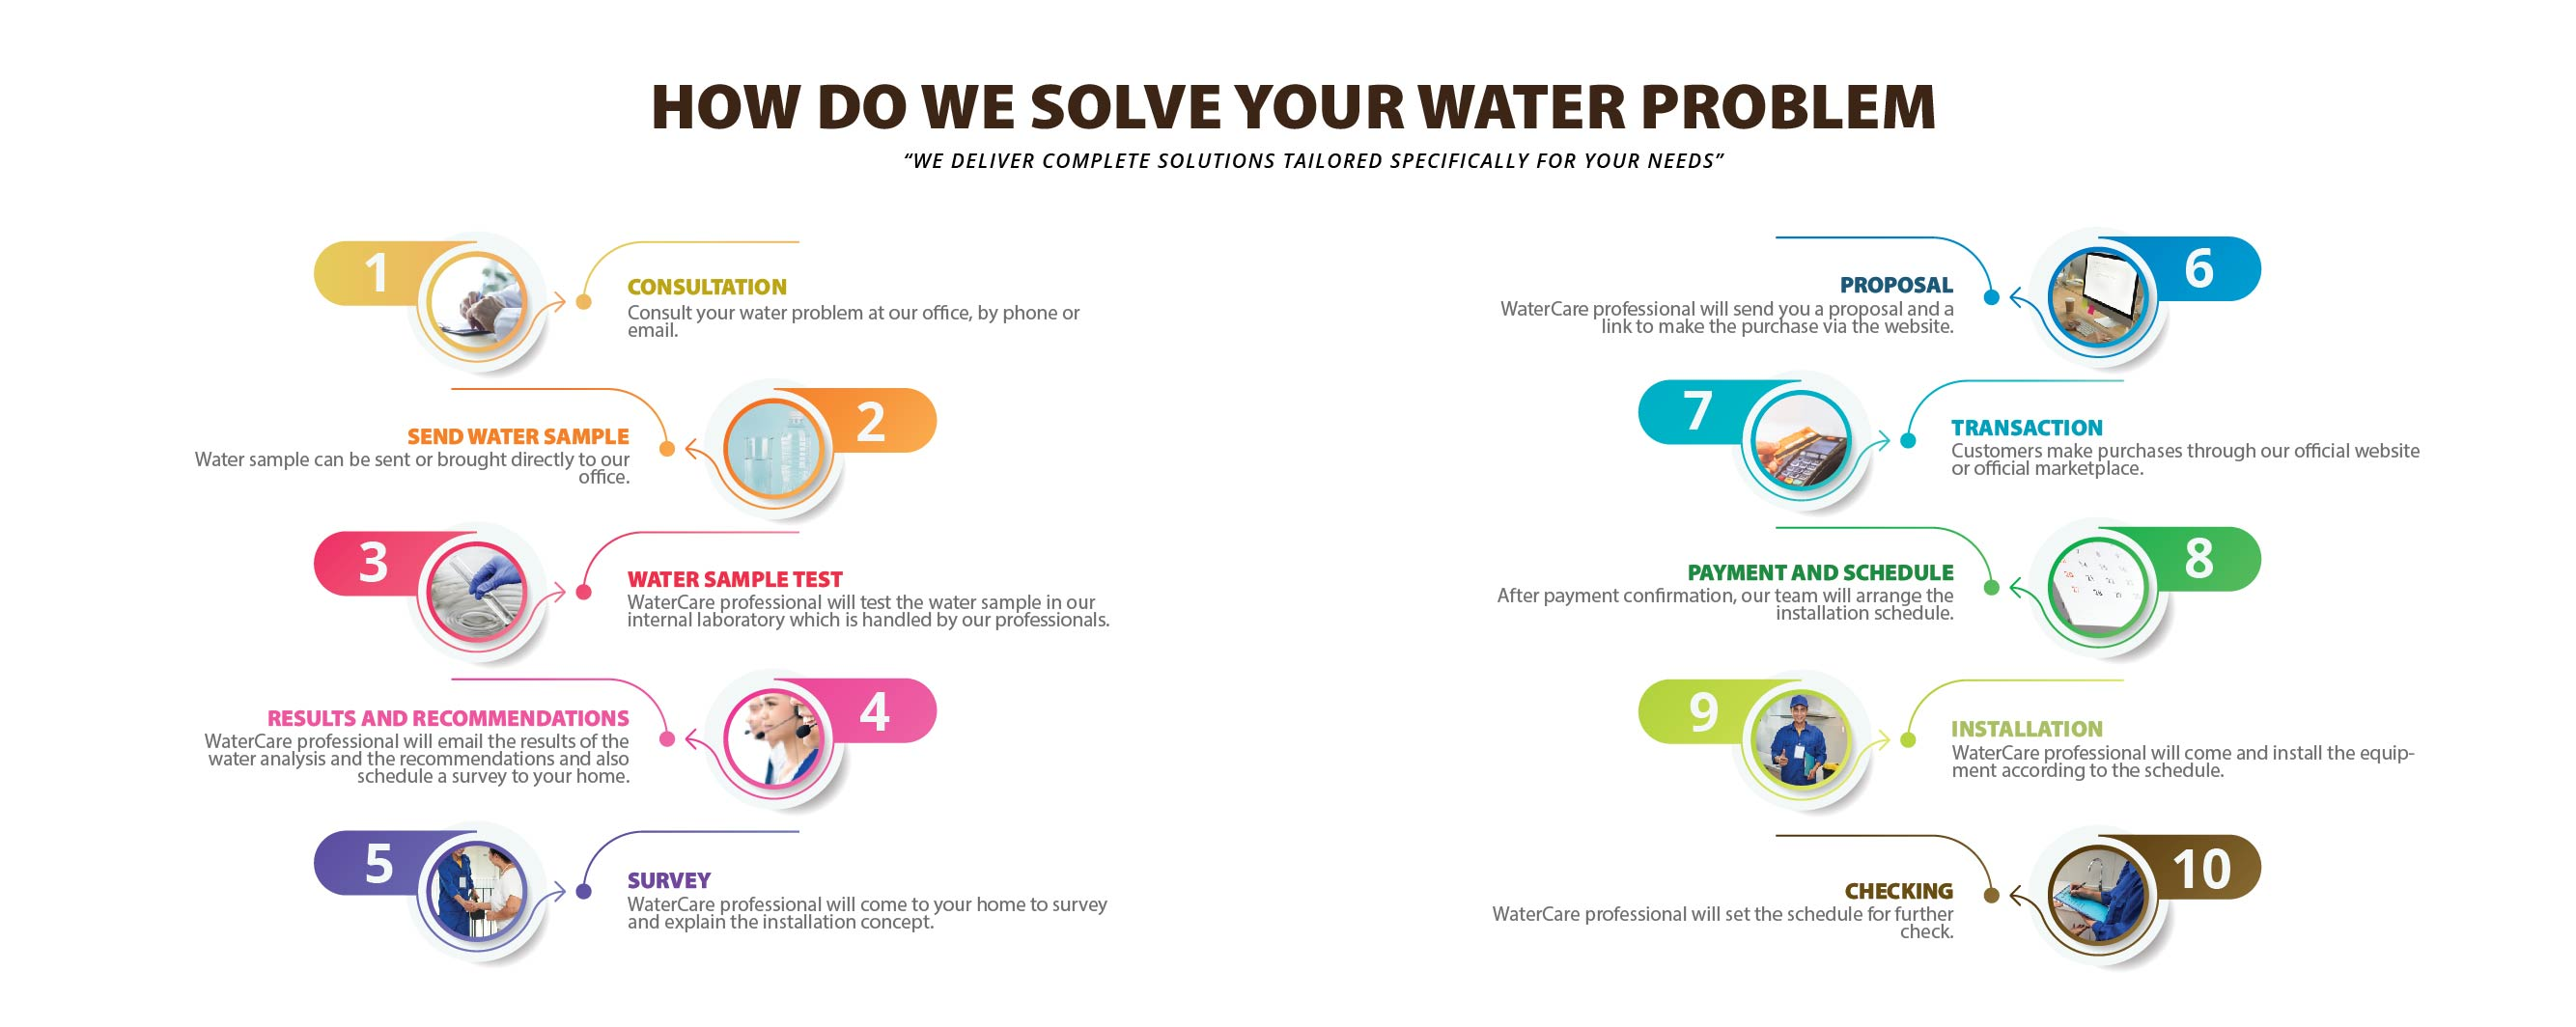 HOW DO WE SOLVE YOUR WATER PROBLEM